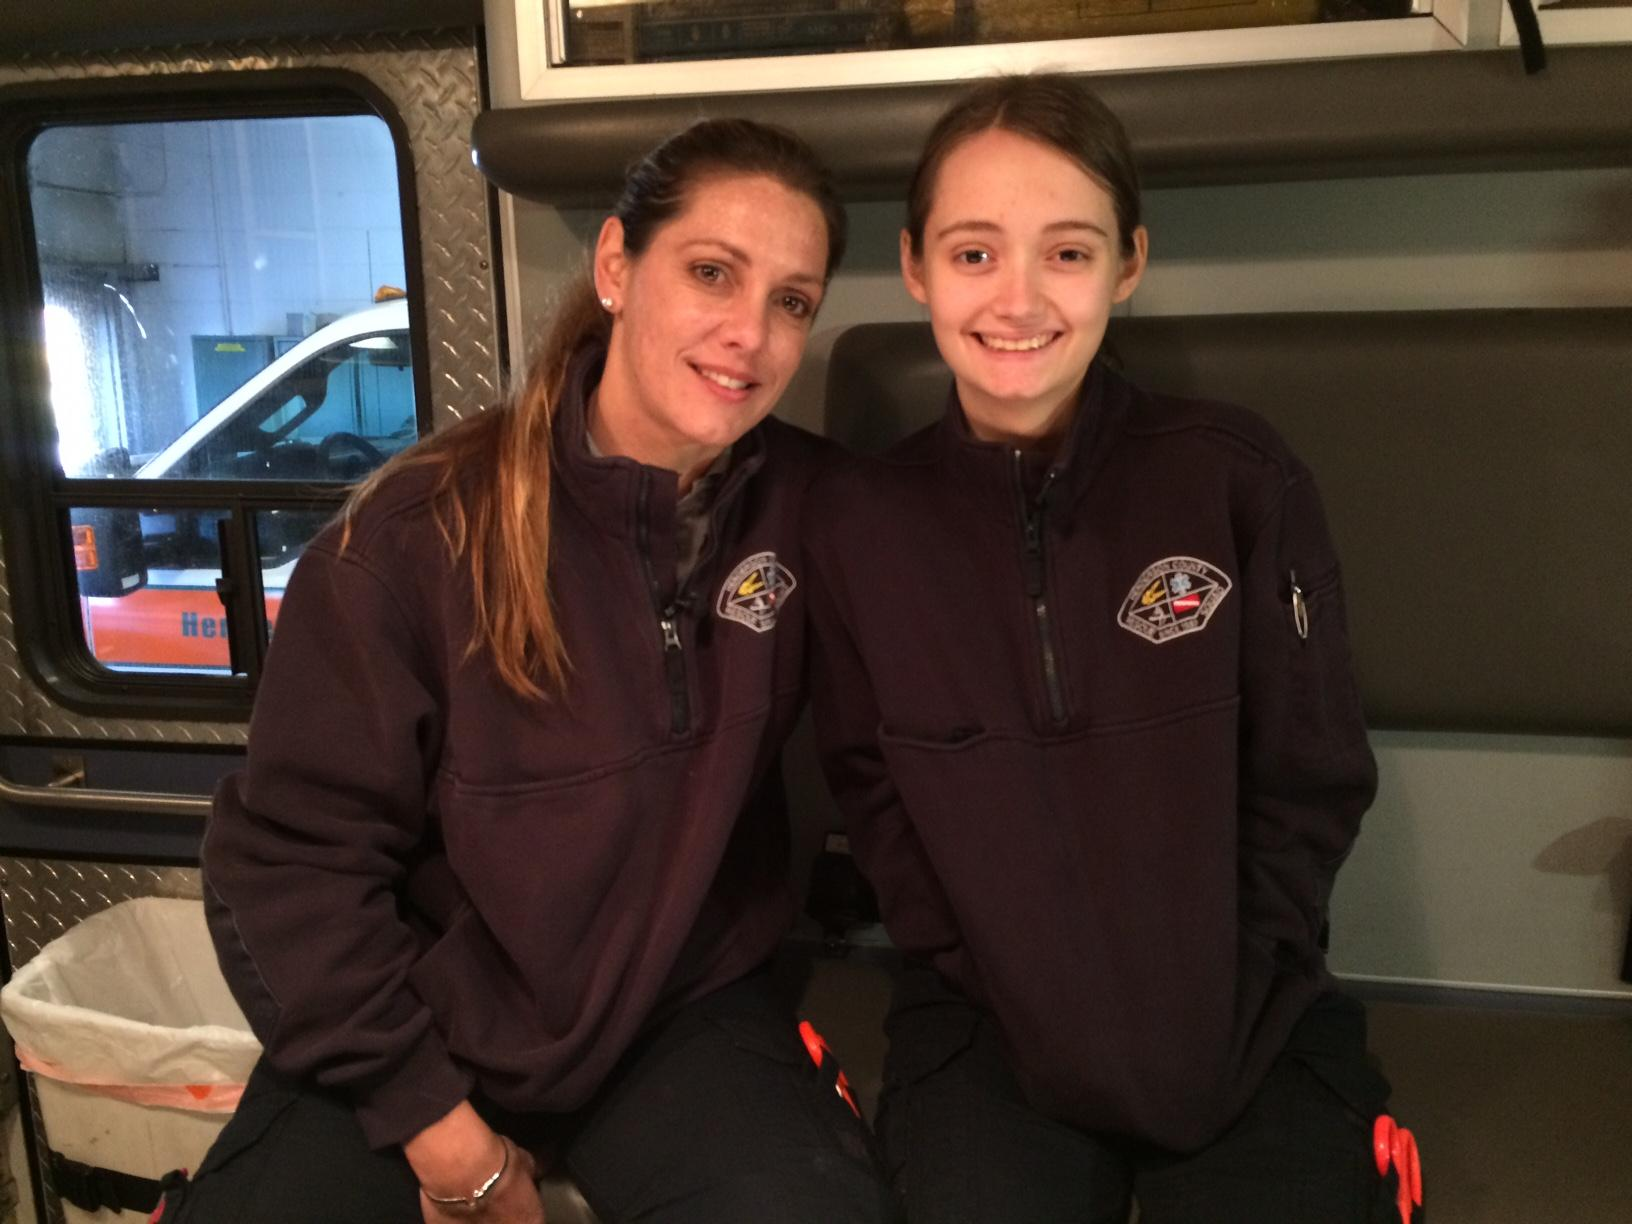 Alex is currently an emergency medical technician, pursuing advanced training. Her daughter, Zoe, joined the squad as a volunteer member two years ago, when she was just 15. (Photo Credit: WLOS Staff).